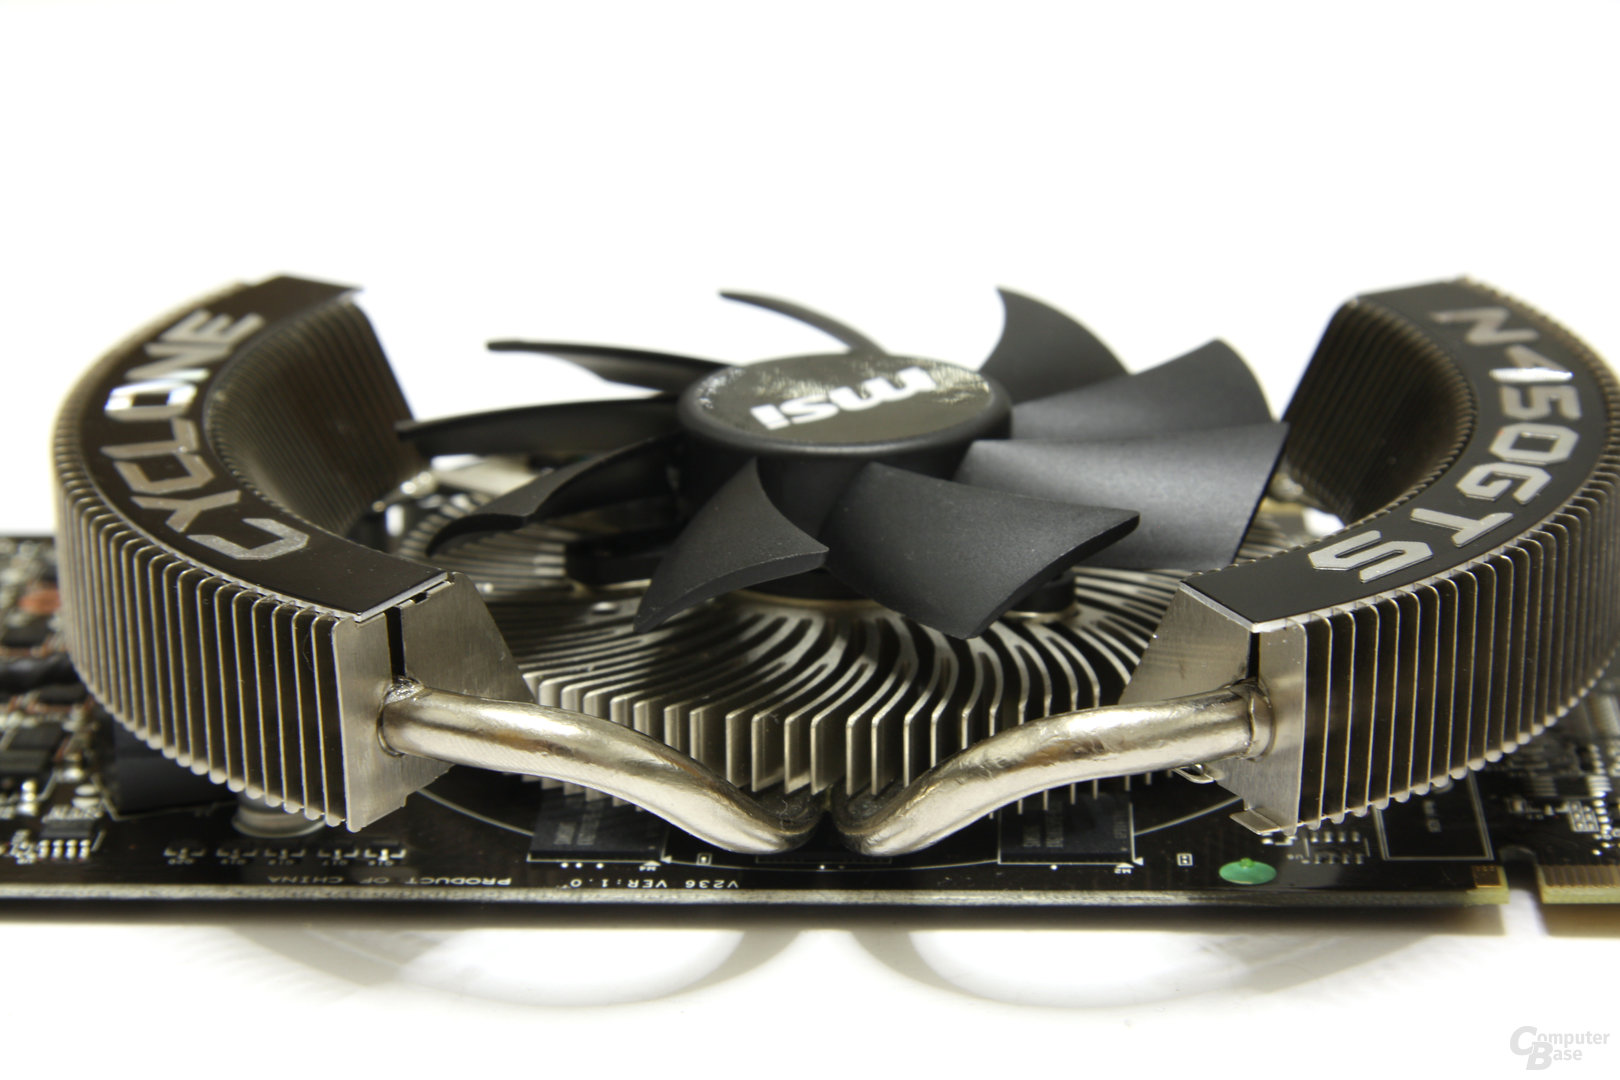 GeForce GTS 450 Cyclone OC Heatpipes